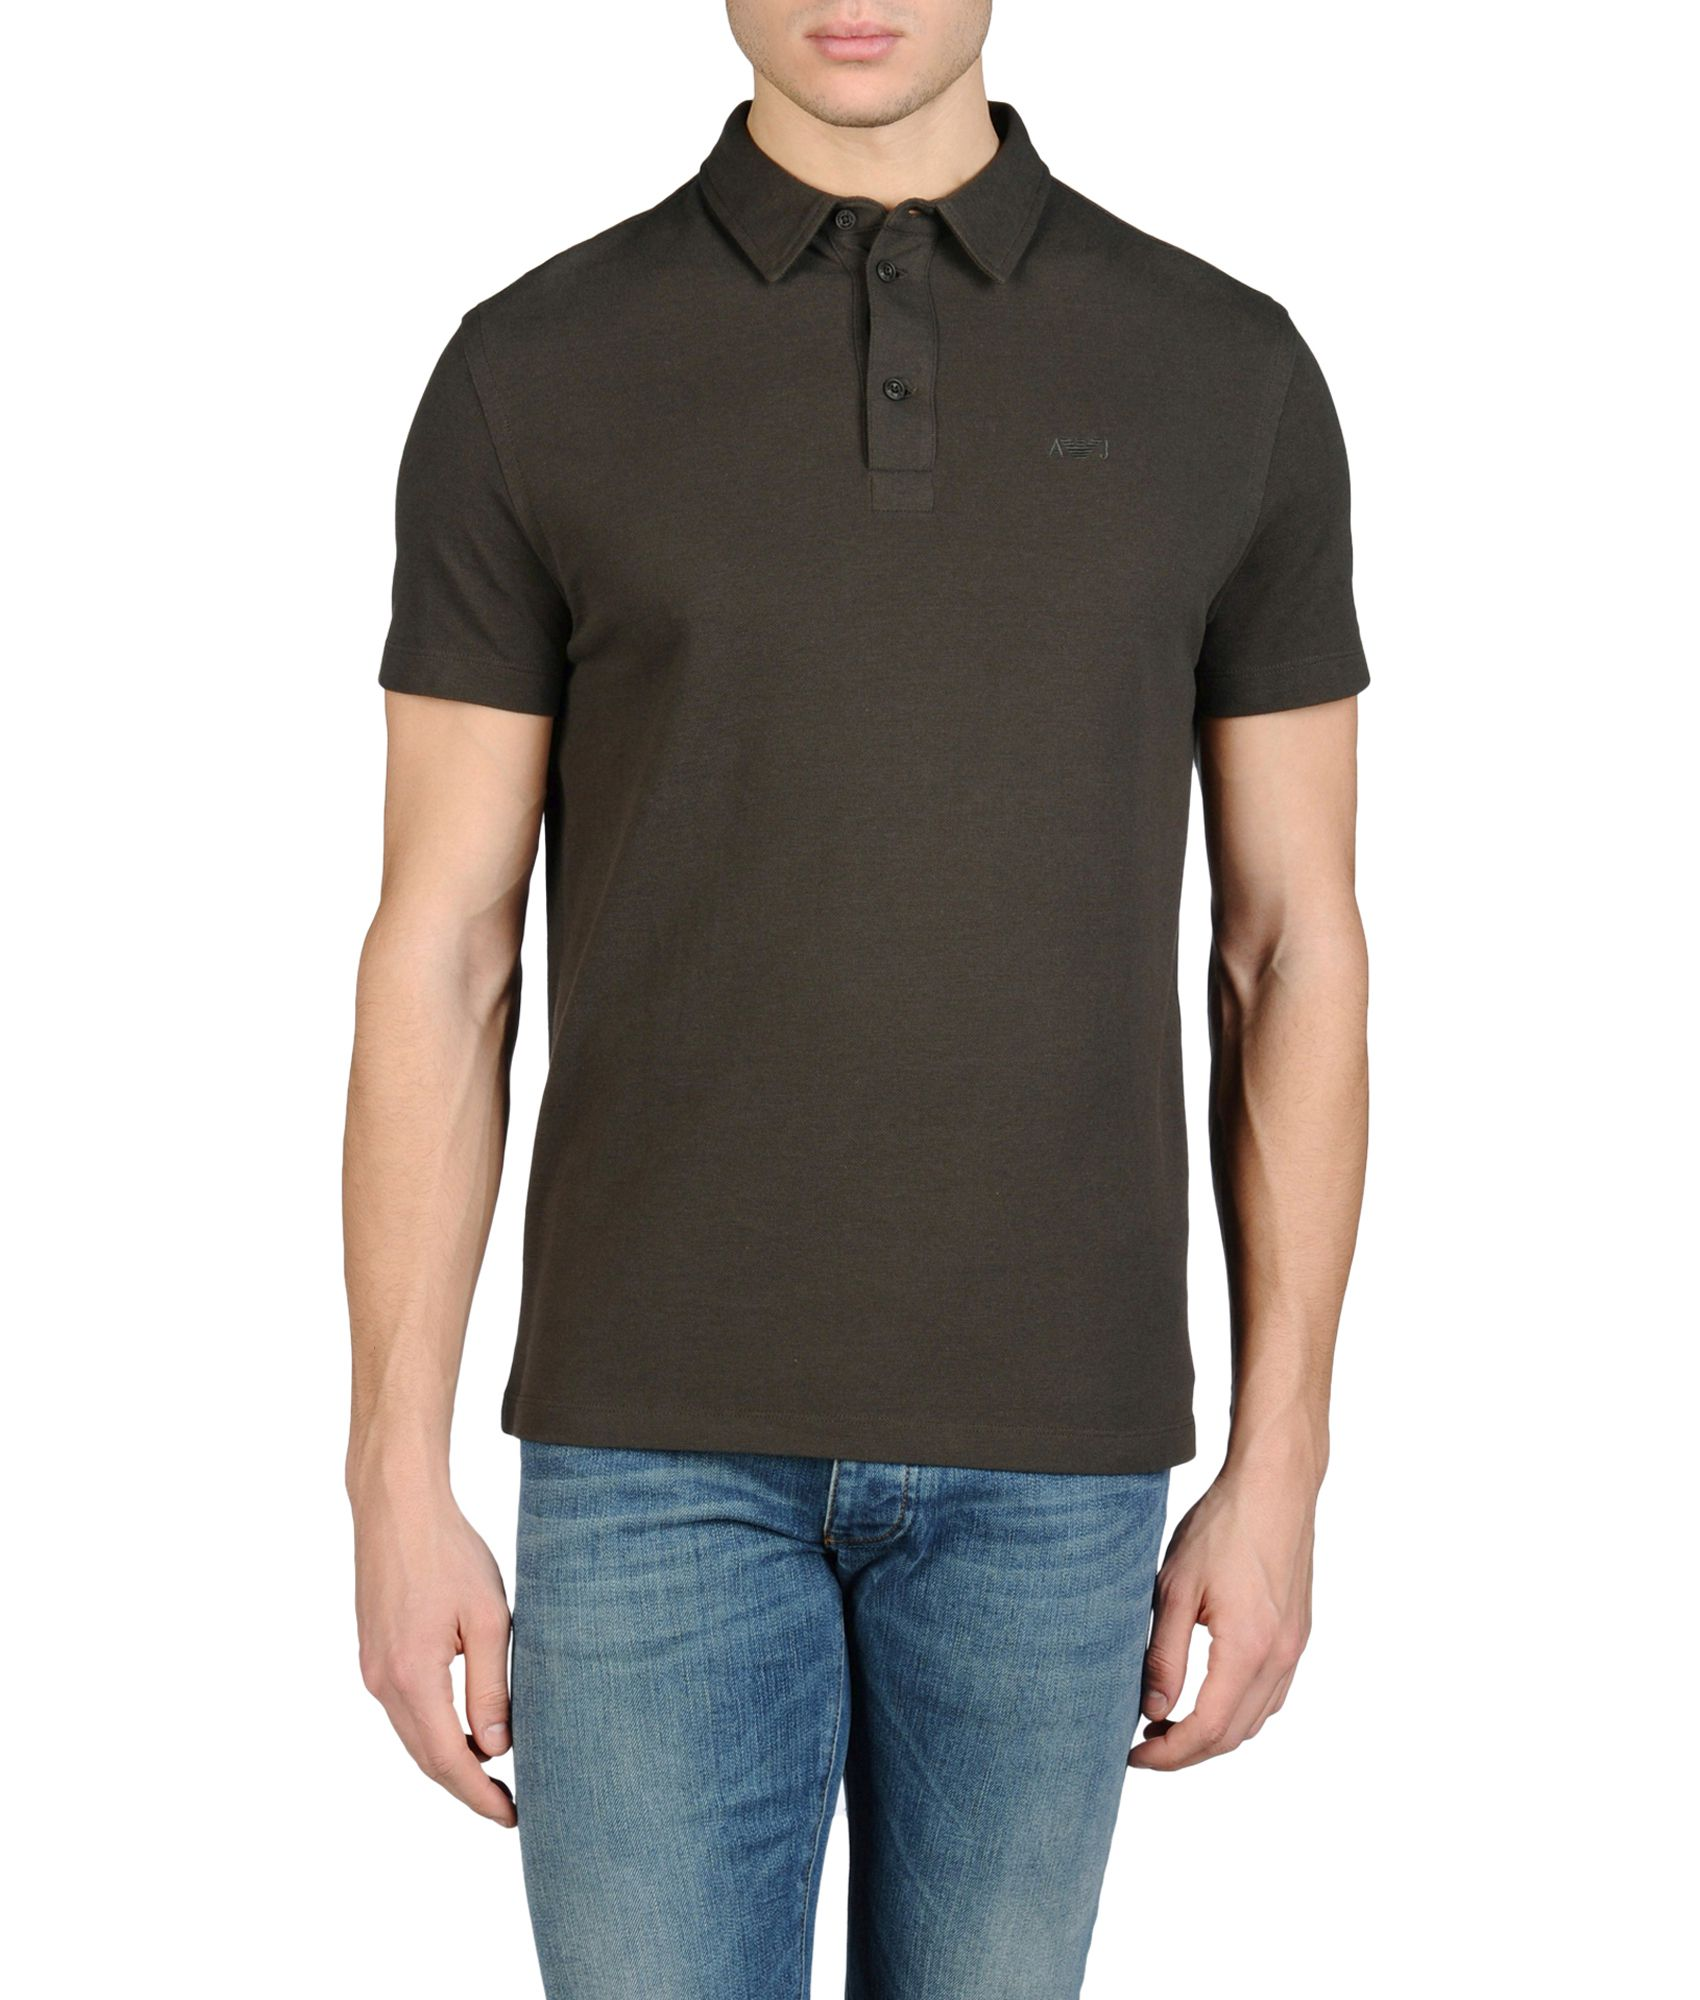 Armani jeans short sleeved polo shirt in creased piqu in for Dark green mens polo shirt